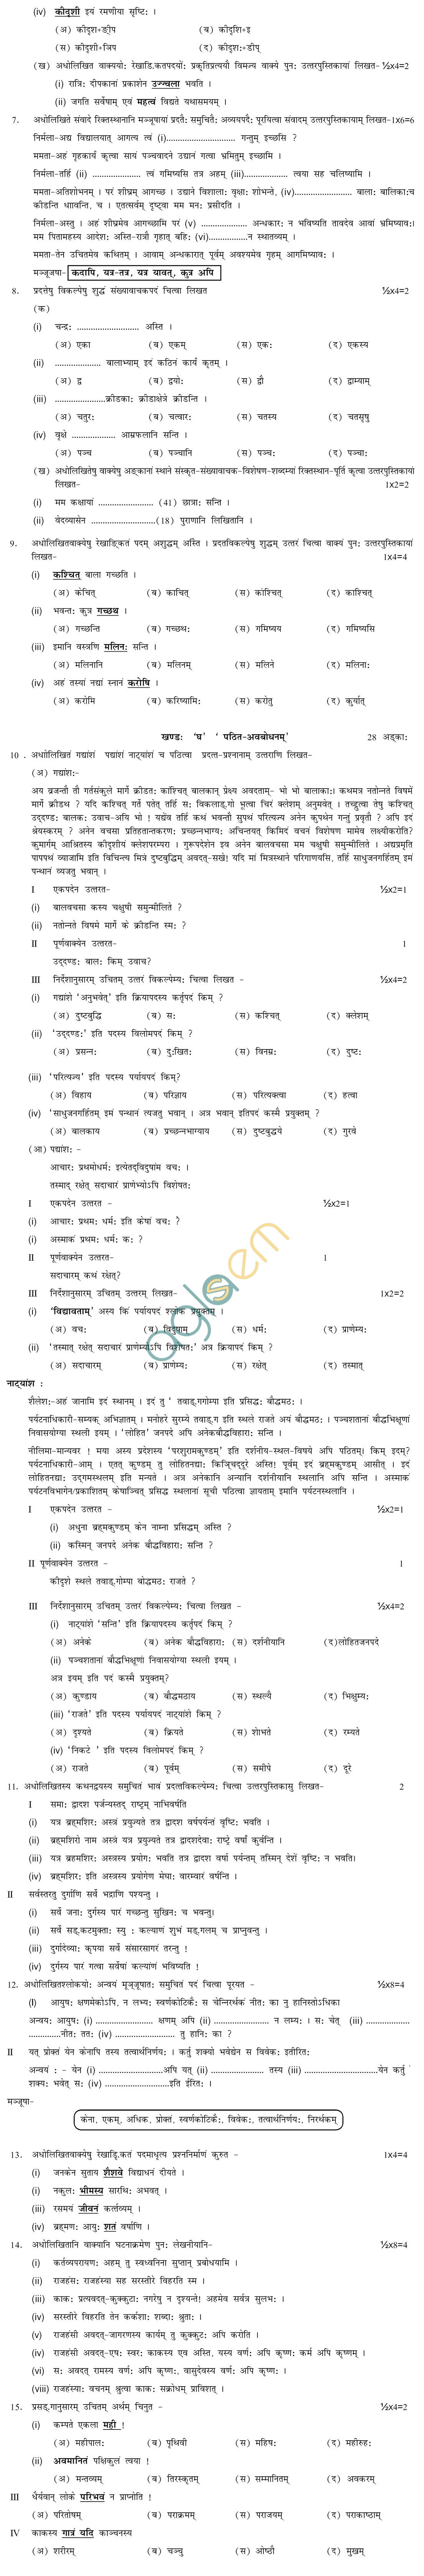 CBSE Board Exam 2013 Sample Papers (SA2) Class X - Sanskrit